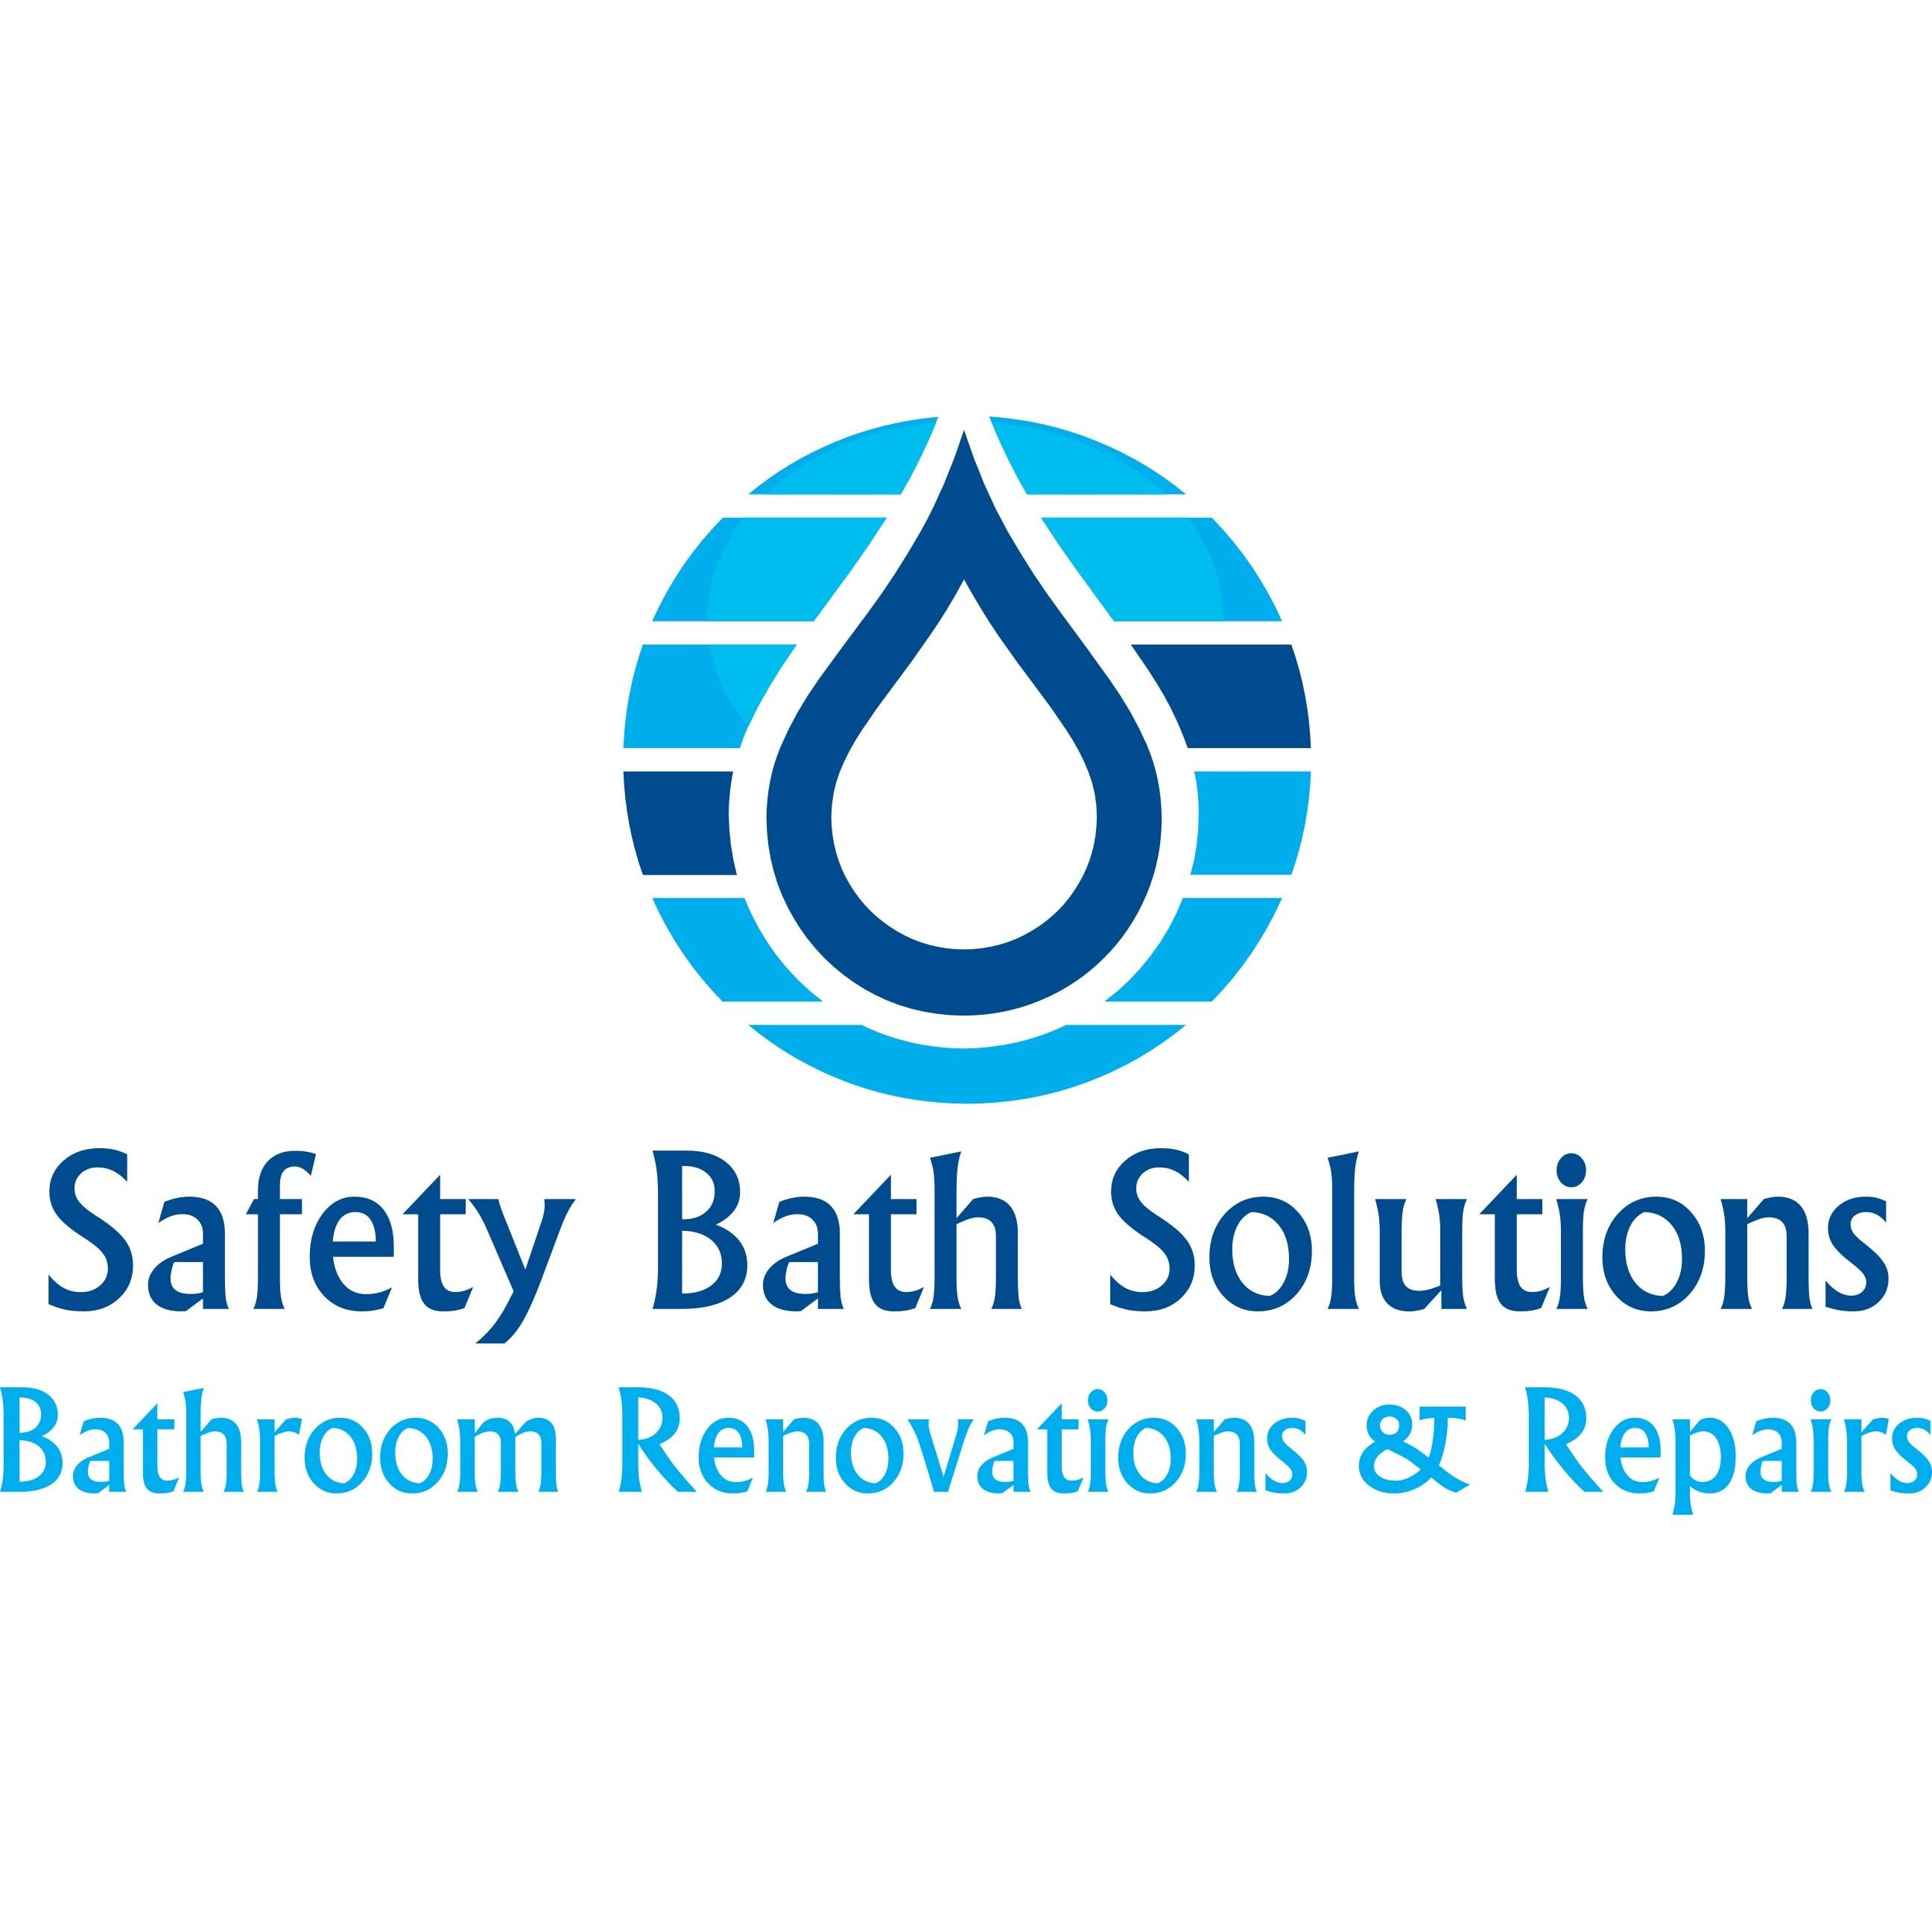 Safety Bath Solutions, LLC